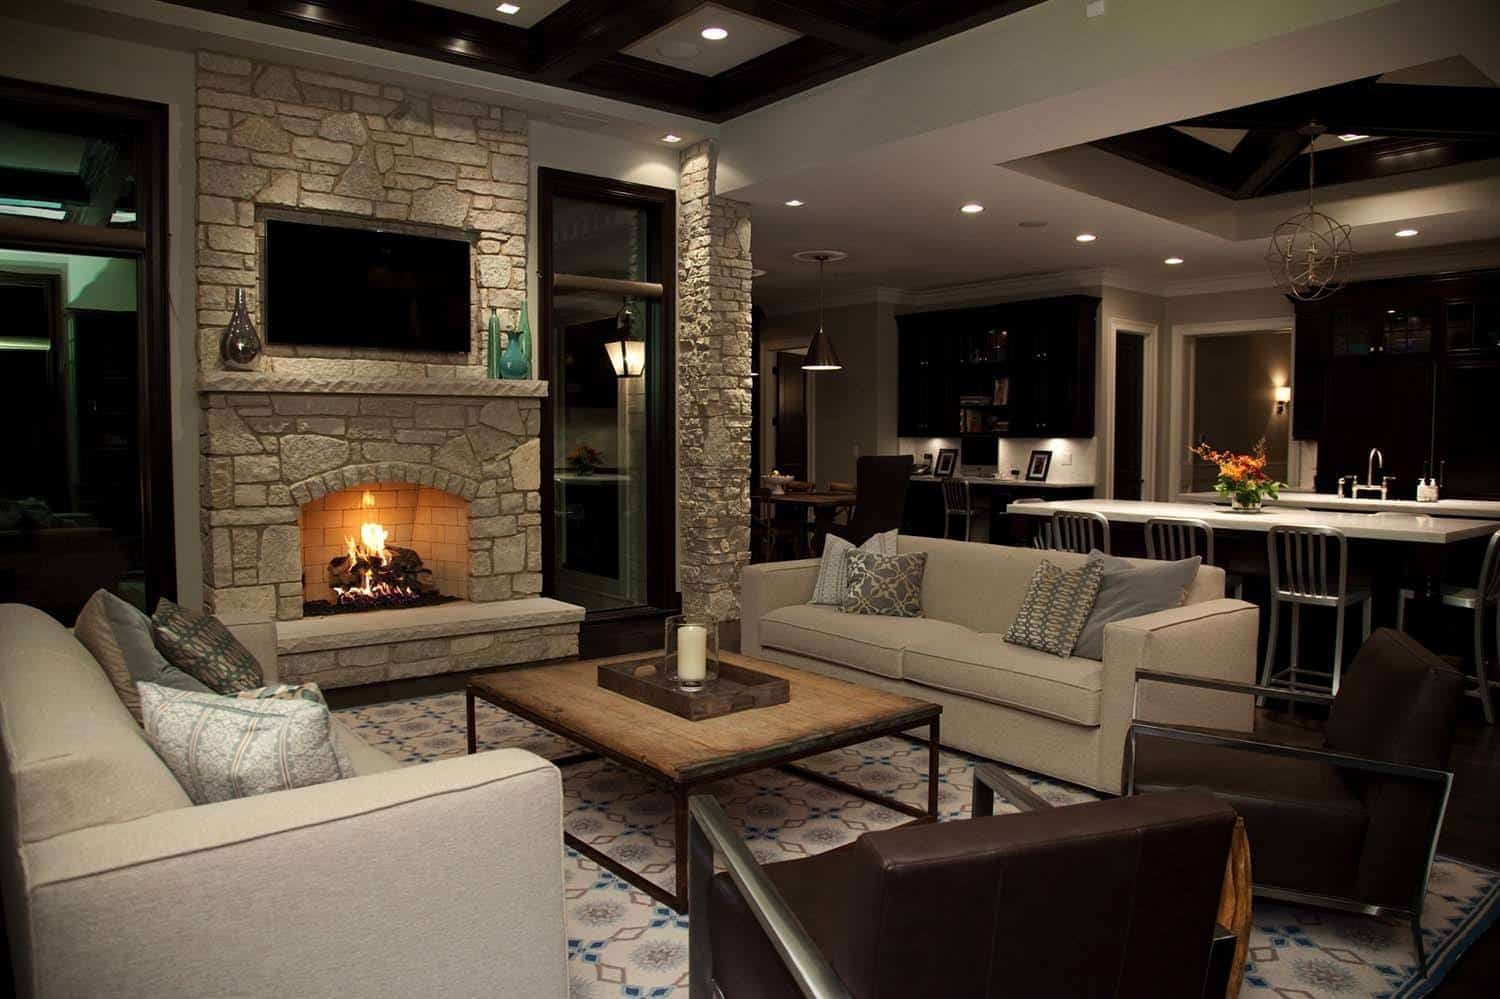 Cozy Fireplace Ideas-37-1 Kindesign